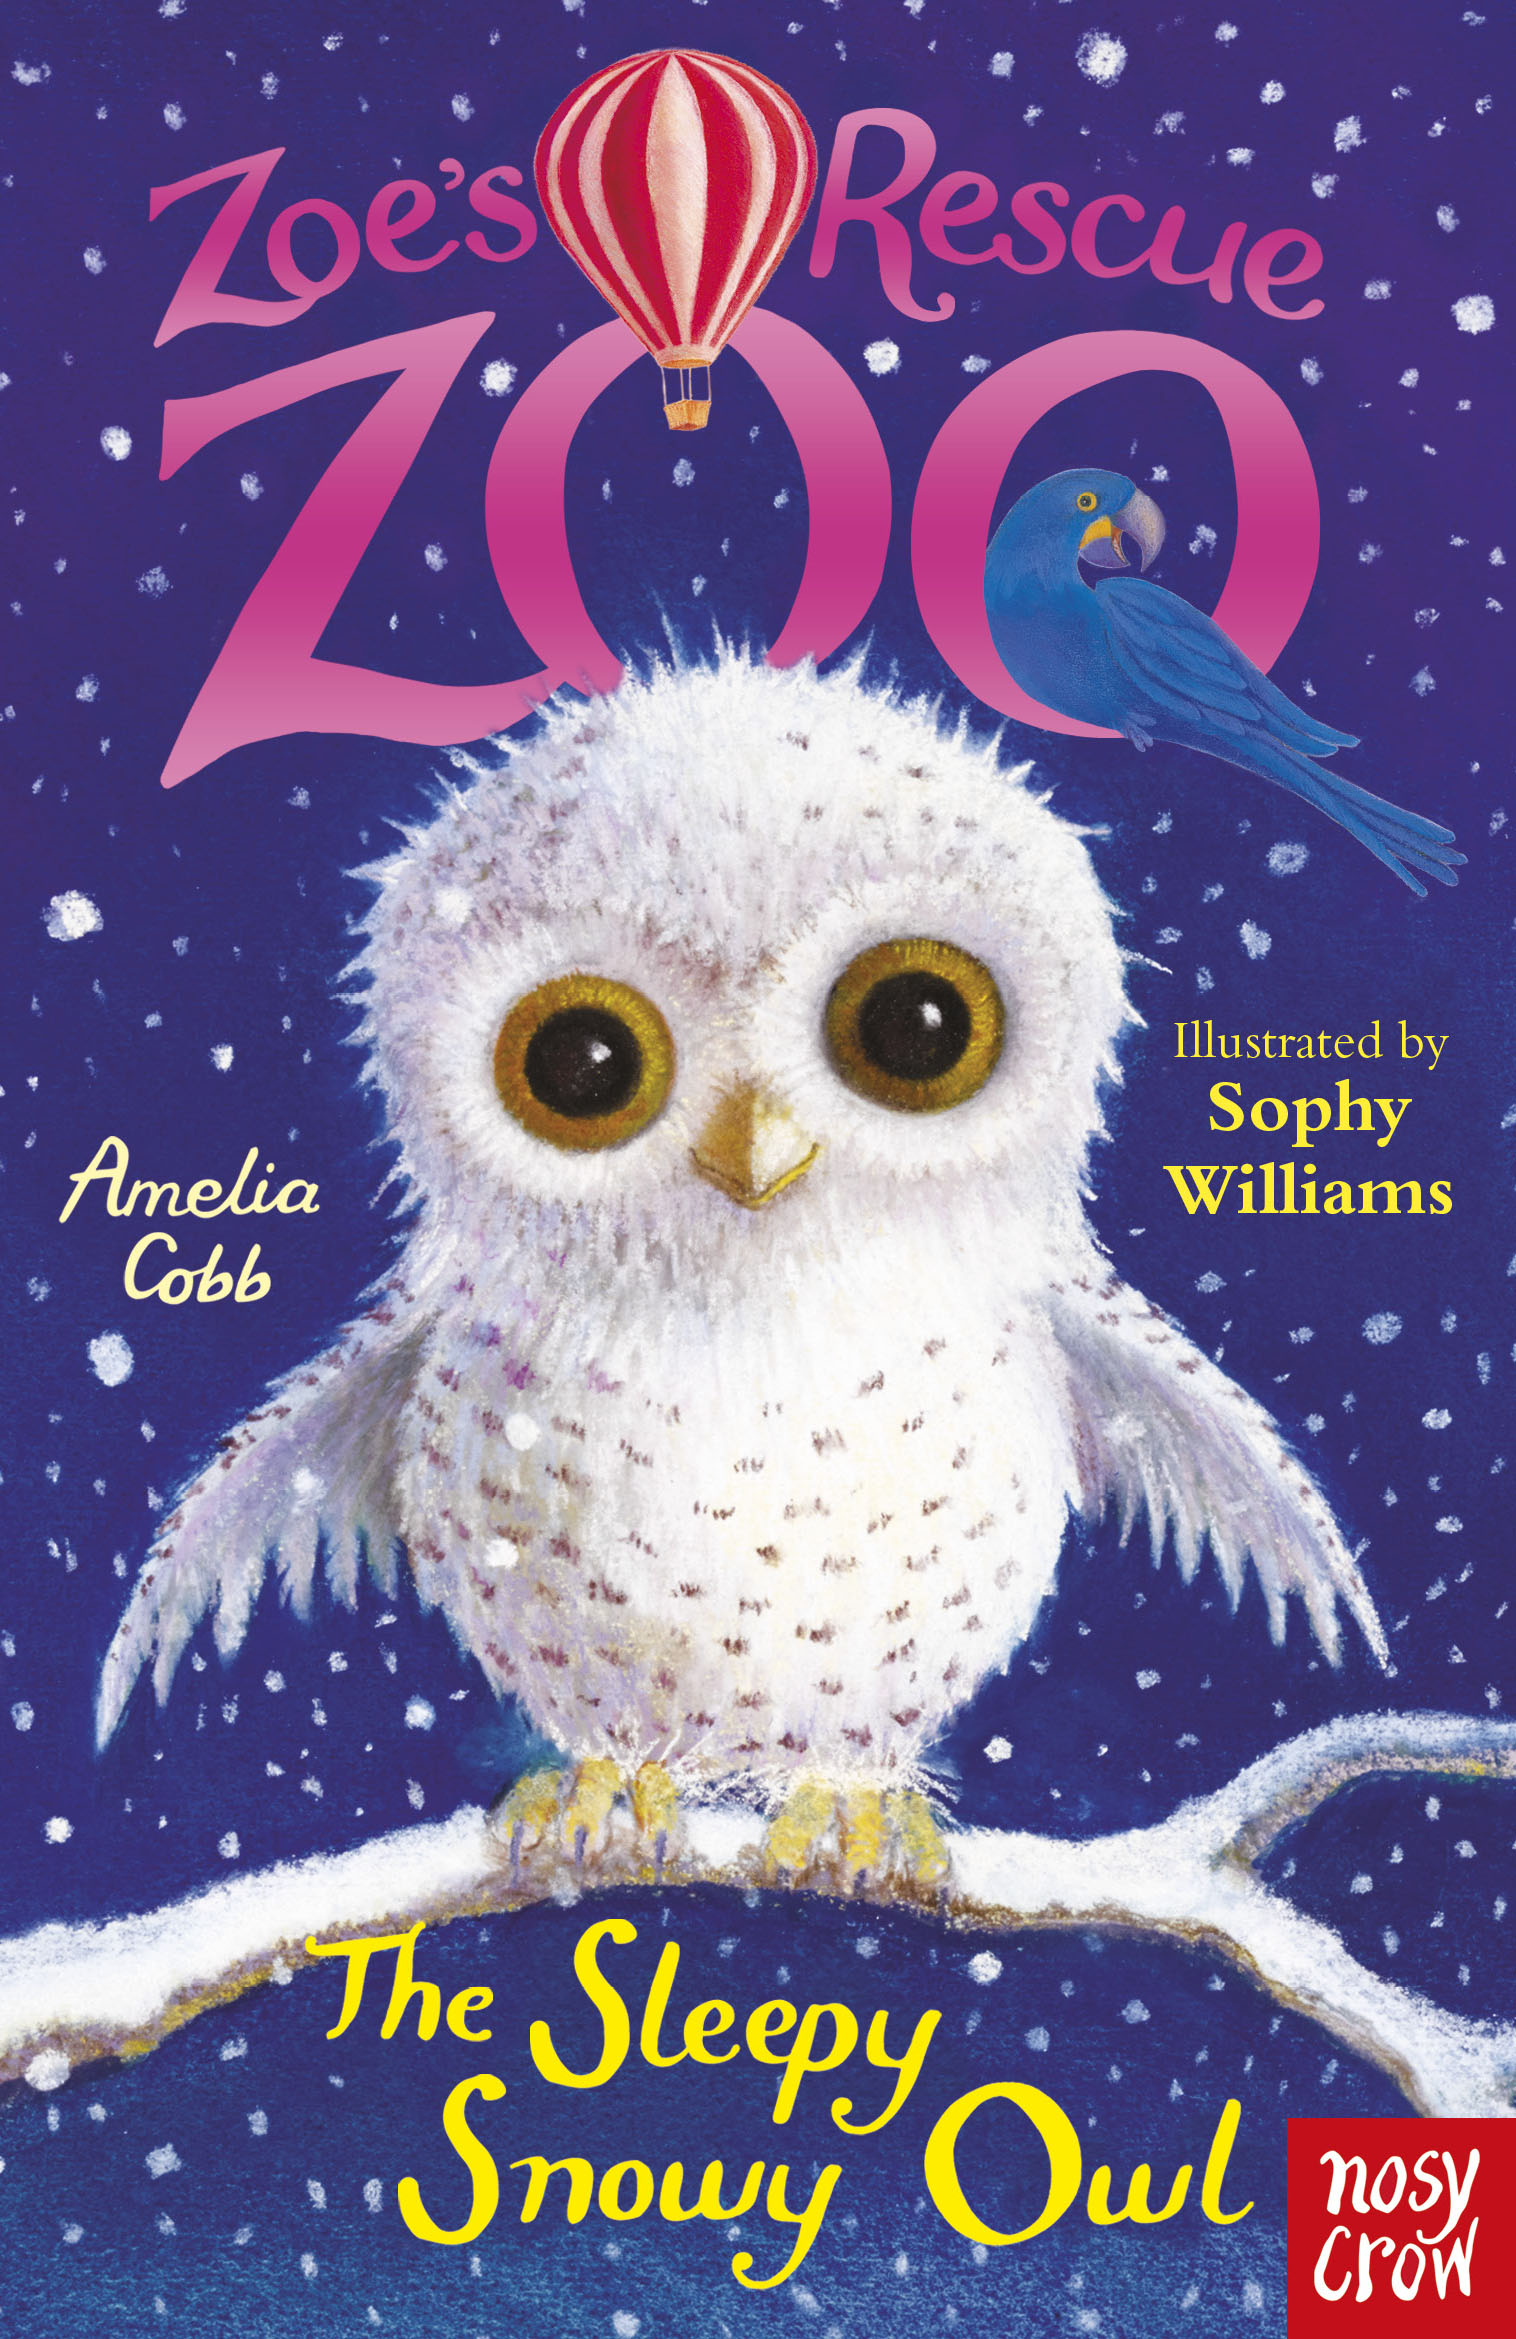 Zoe's Rescue Zoo: The Sleepy Snowy Owl can you keep a secret